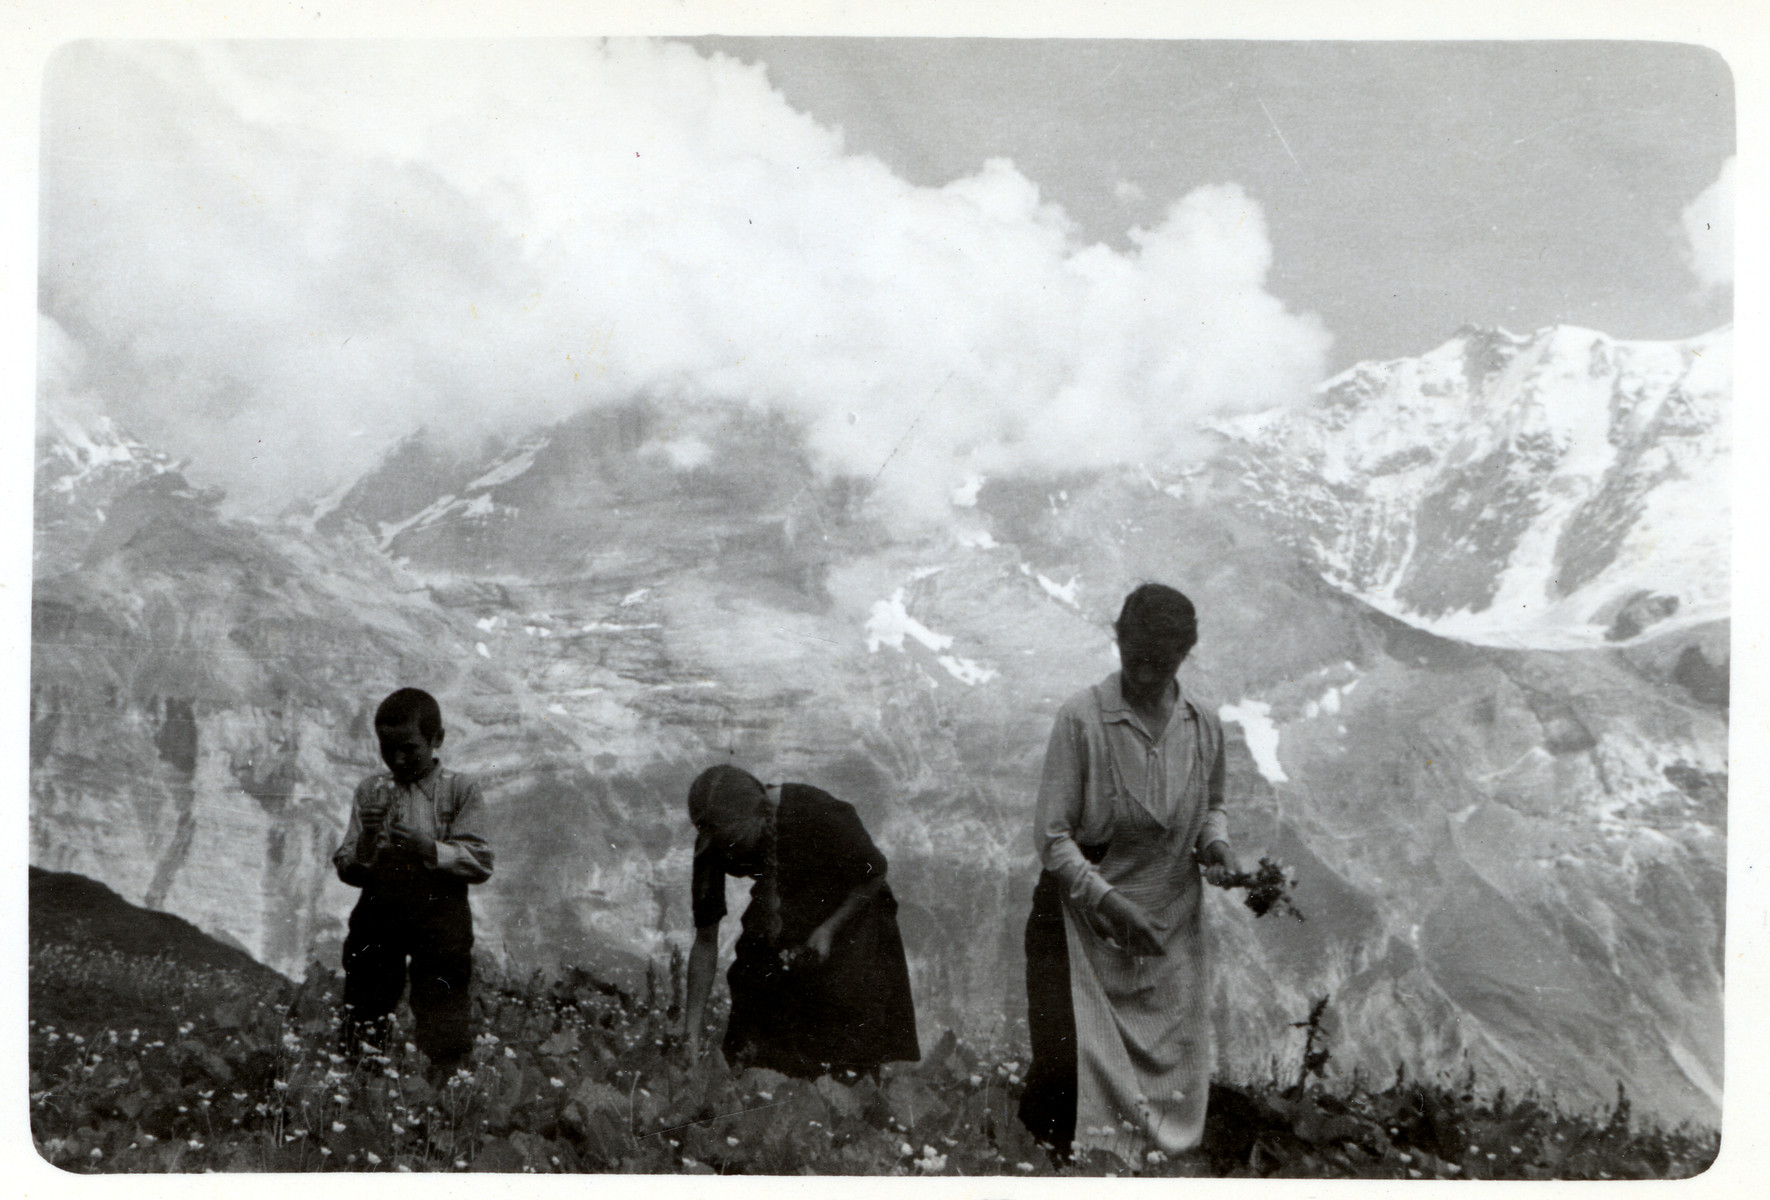 A family picks flowers in the mountains.